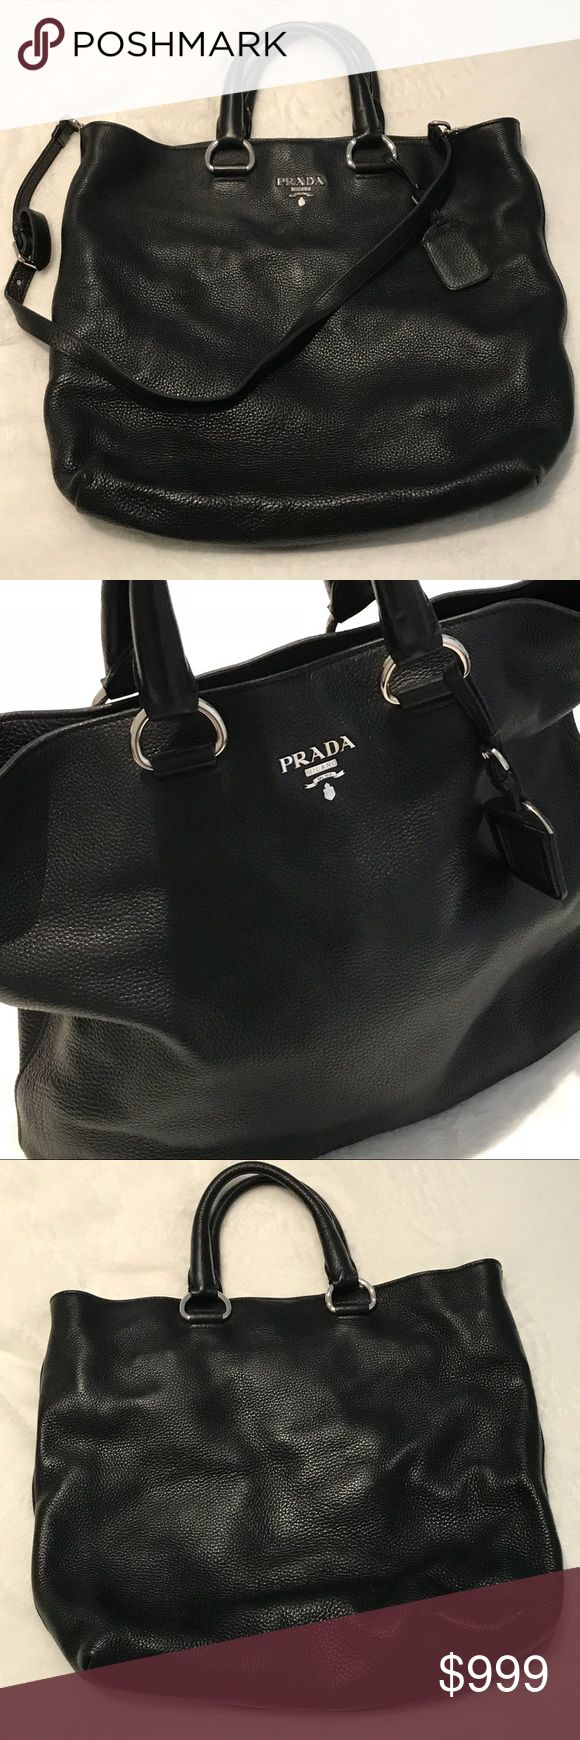 "Prada Leather Tote/Messenger Bag Perfect for work, travel, laptop bag or large purse. Like NEW!  Always in fashion, absolutely timeless! 100% authentic, with ID cards and original dust bag. Inside, outside and hardware are in perfect condition. No marks. Can be carried by hand or with the long strap (removable and adjustable between 22""-29""). Bag size is 13"" x 17"". Leather is heavy yet soft. A true investment for your closet! *SHIPS SAME OR NEXT BUSINESS DAY!* 🚫 no trades Prada Bags Totes"